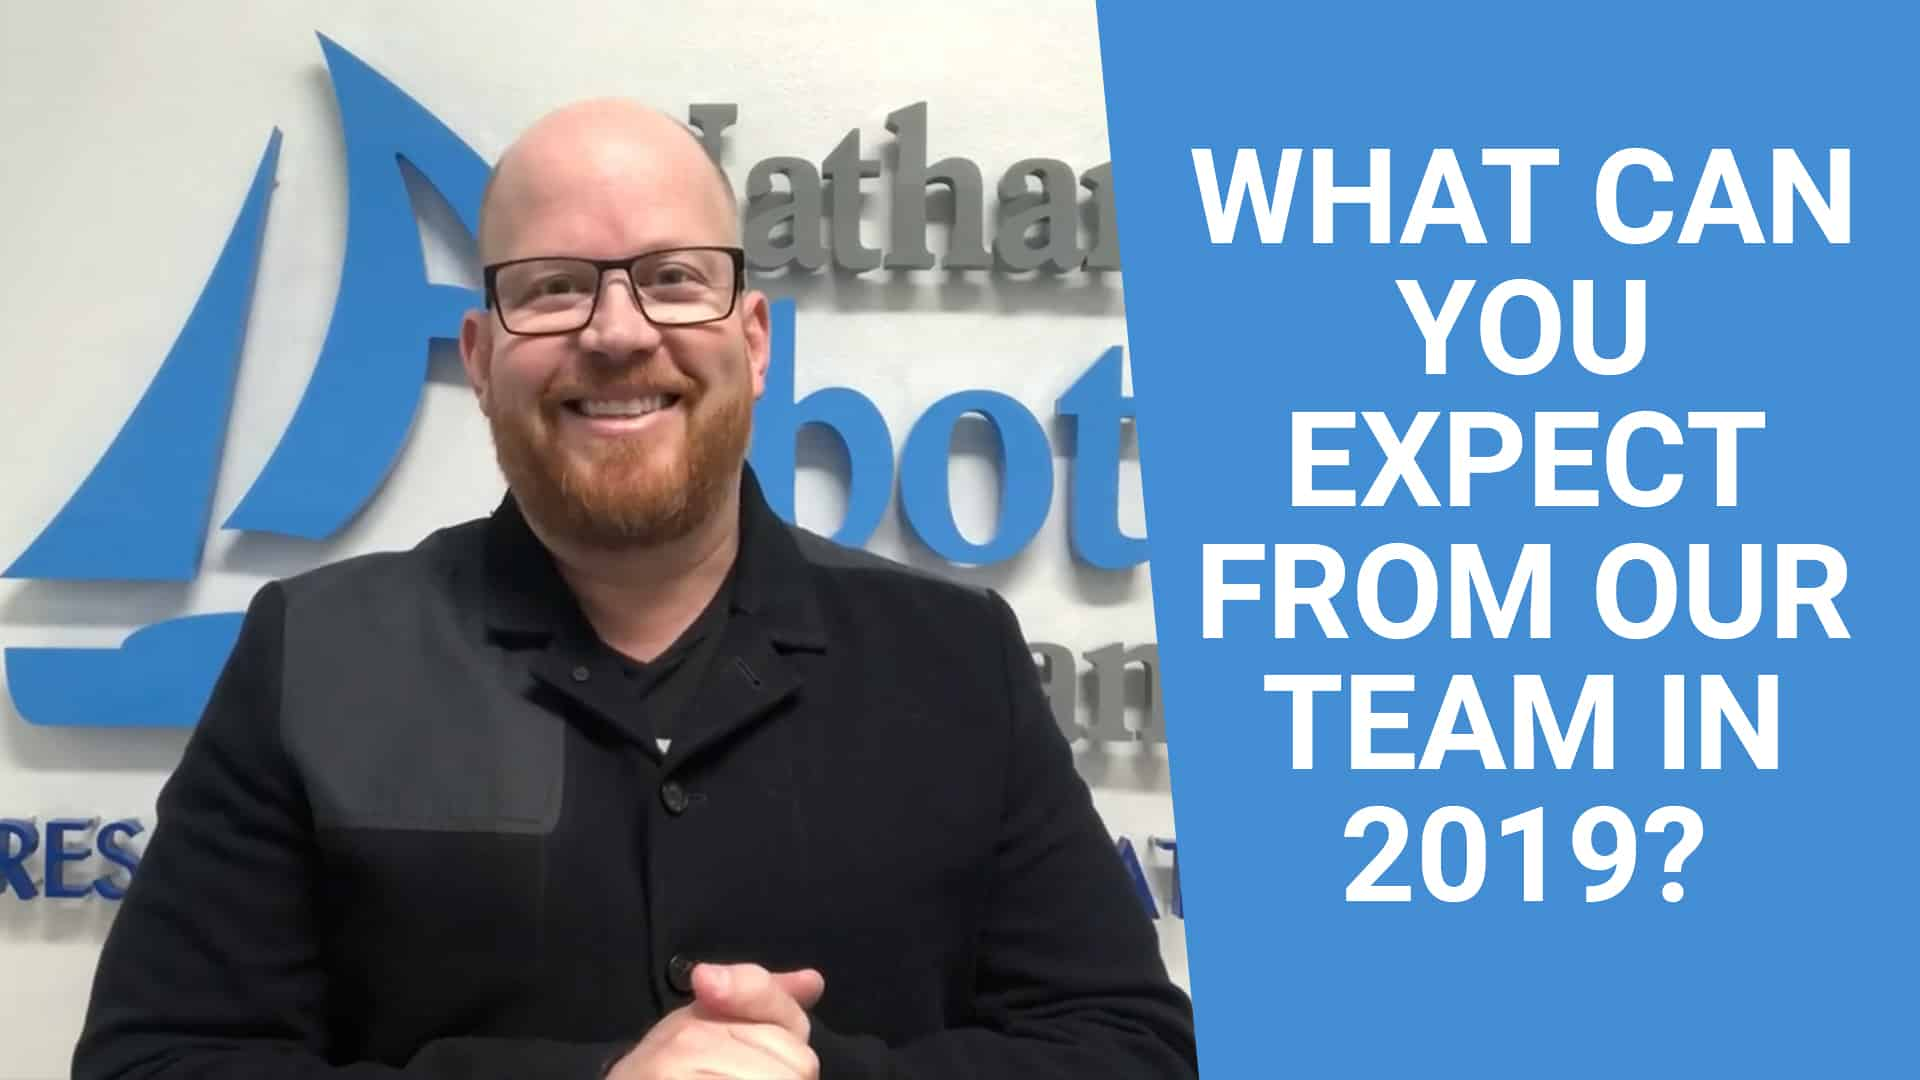 Nathan Abbott Team: What Can You Expect From Our Team in 2019?